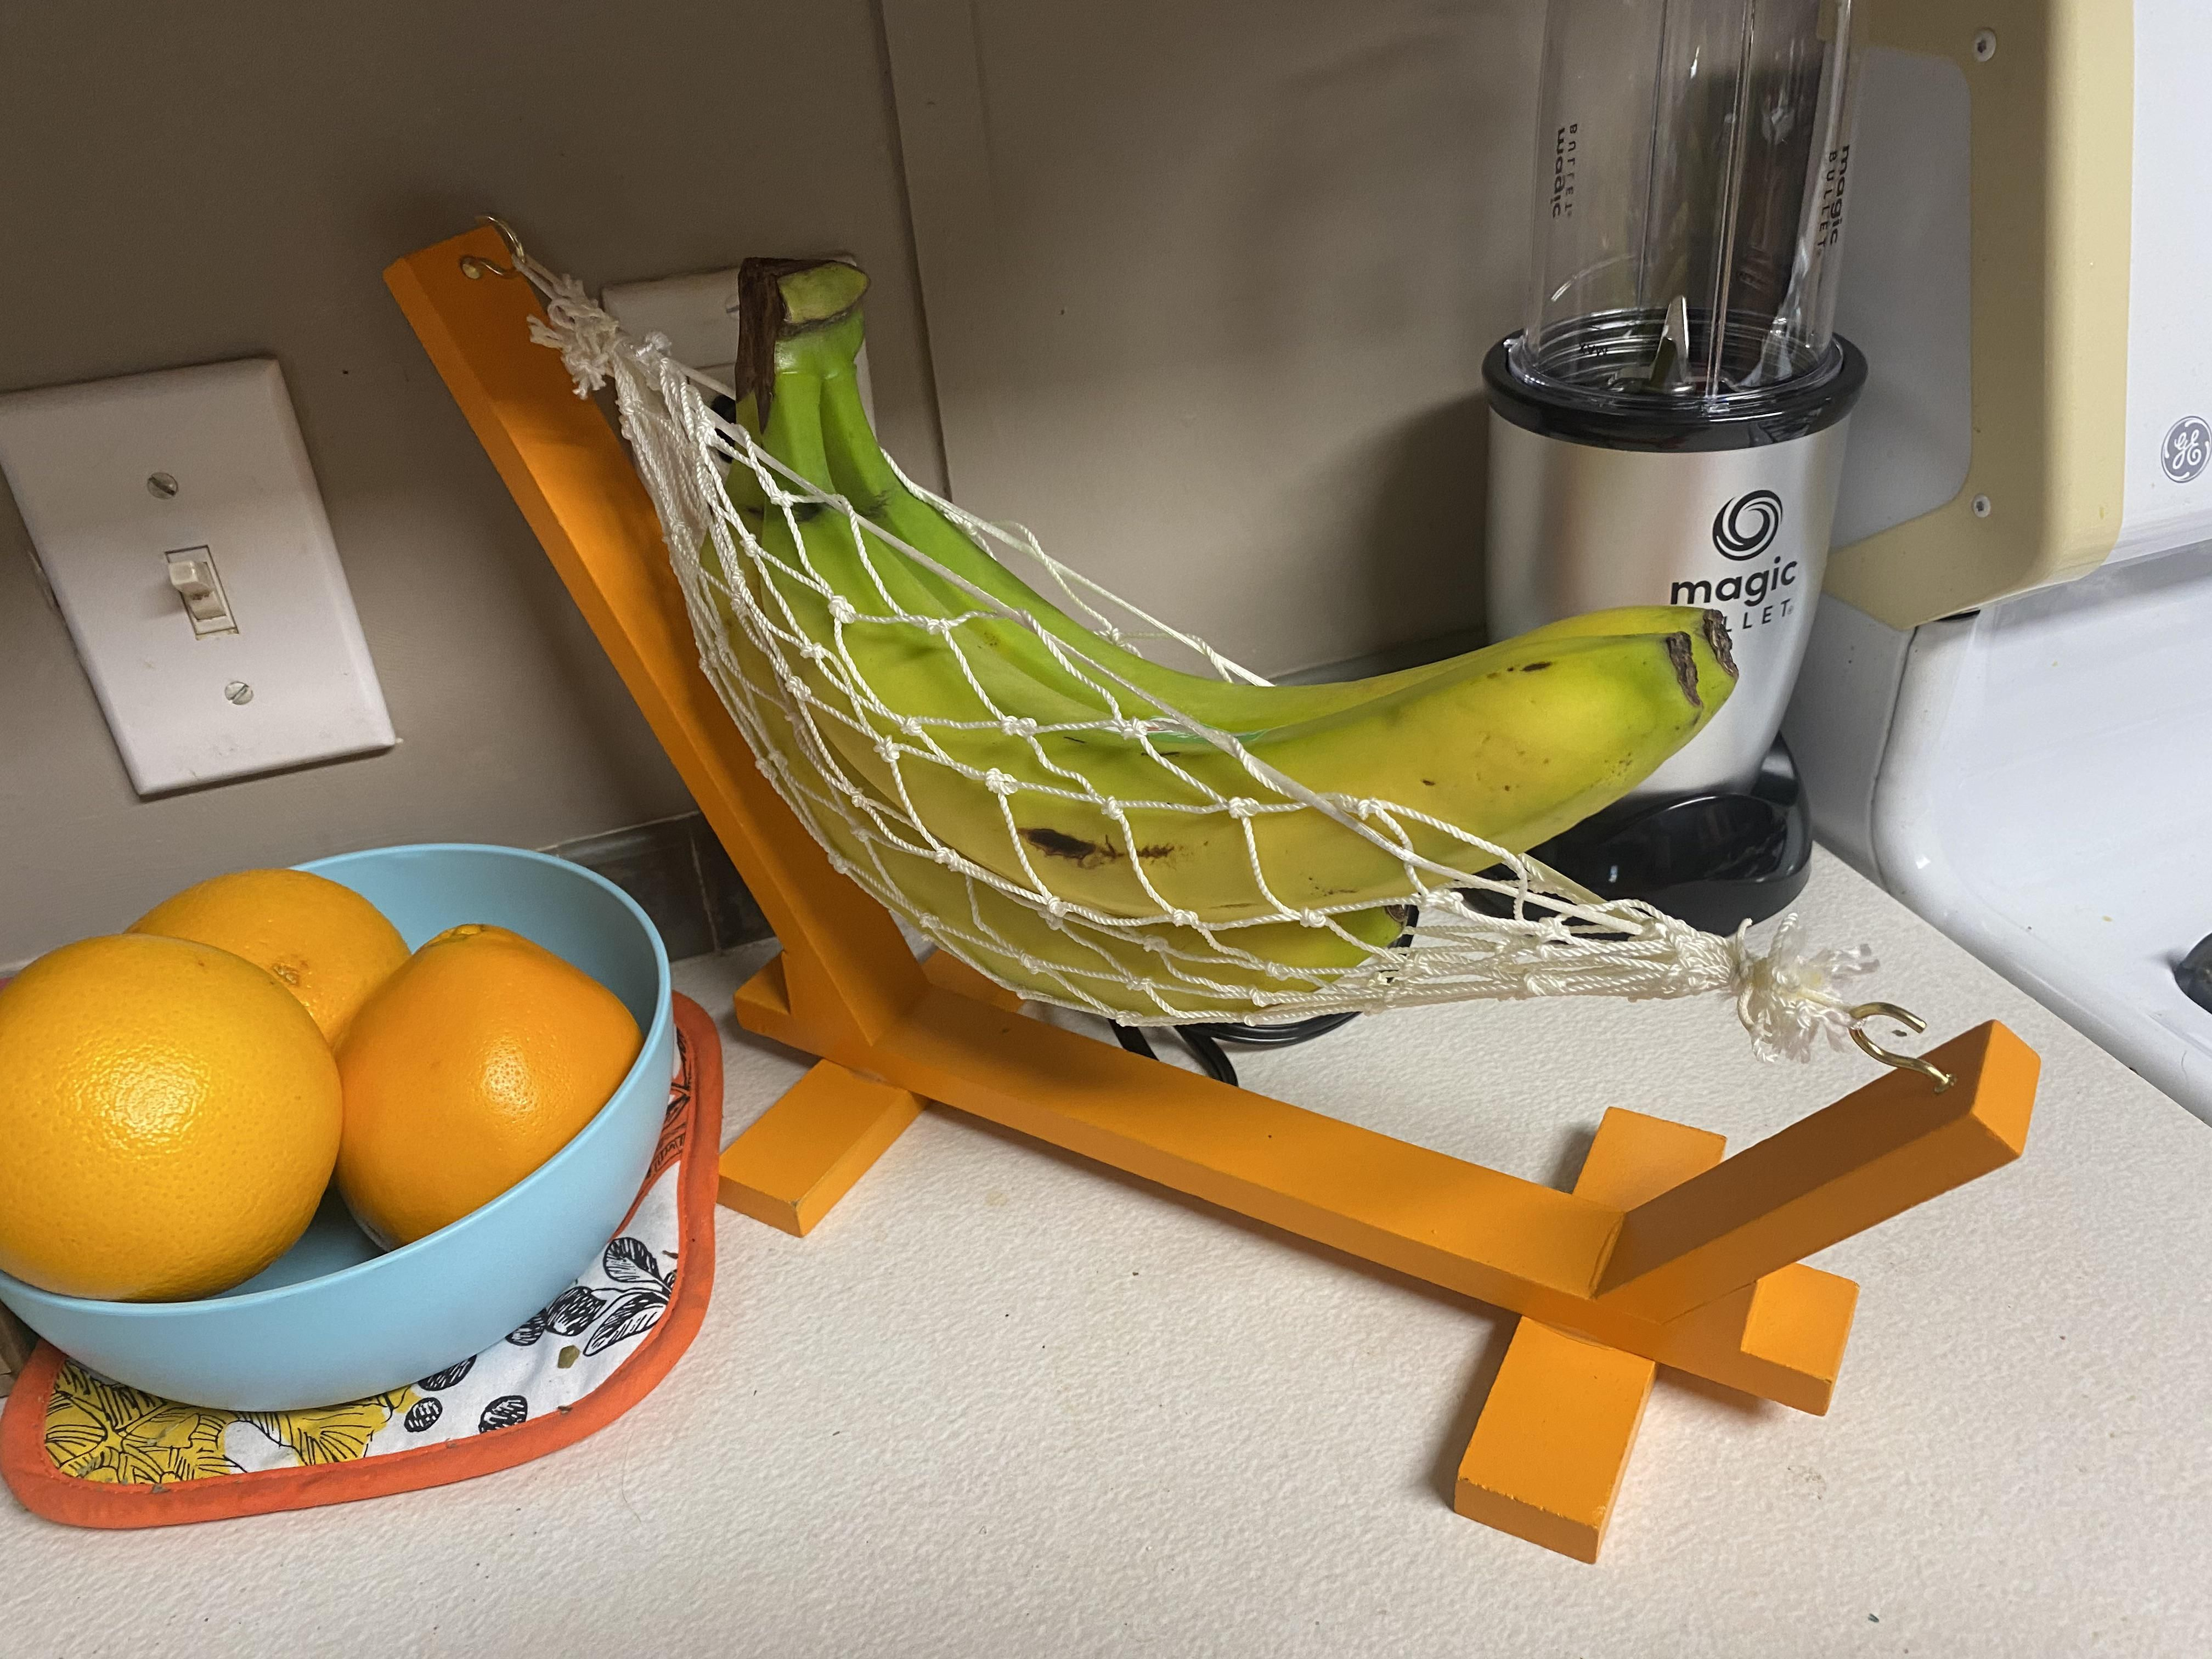 My new house came with this little hammock thing. So it's now my banana hammock